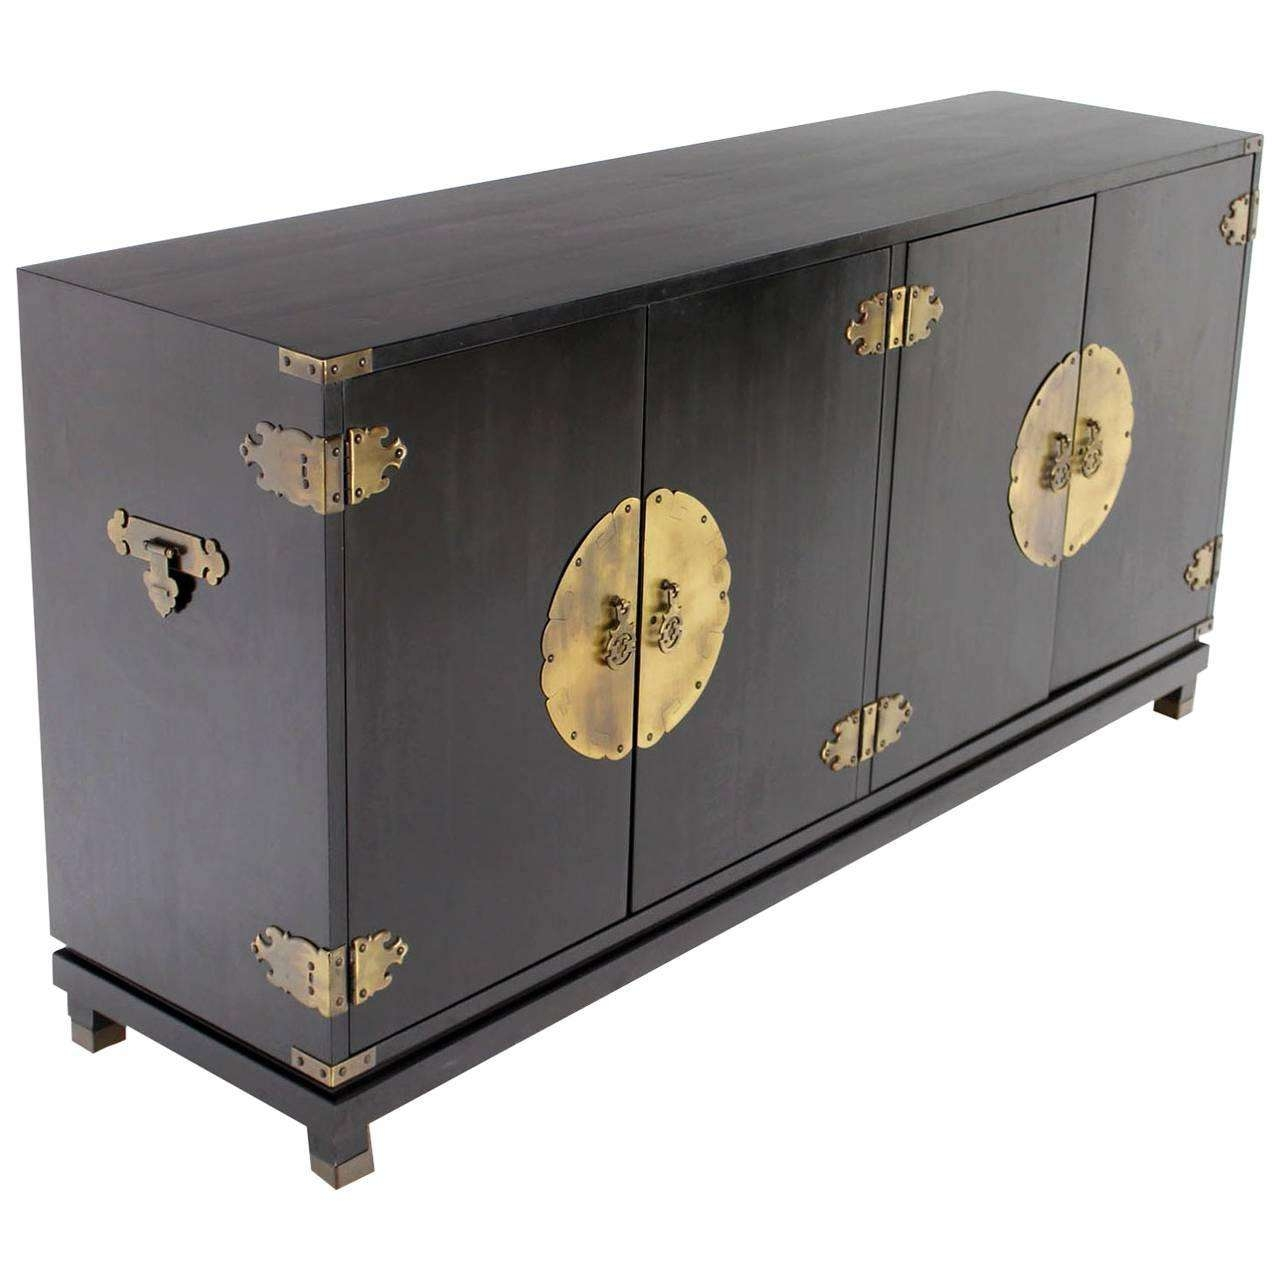 Black Lacquer Oriental Mid Century Modern Sideboard Or Credenza Throughout Credenzas And Sideboards (View 2 of 20)